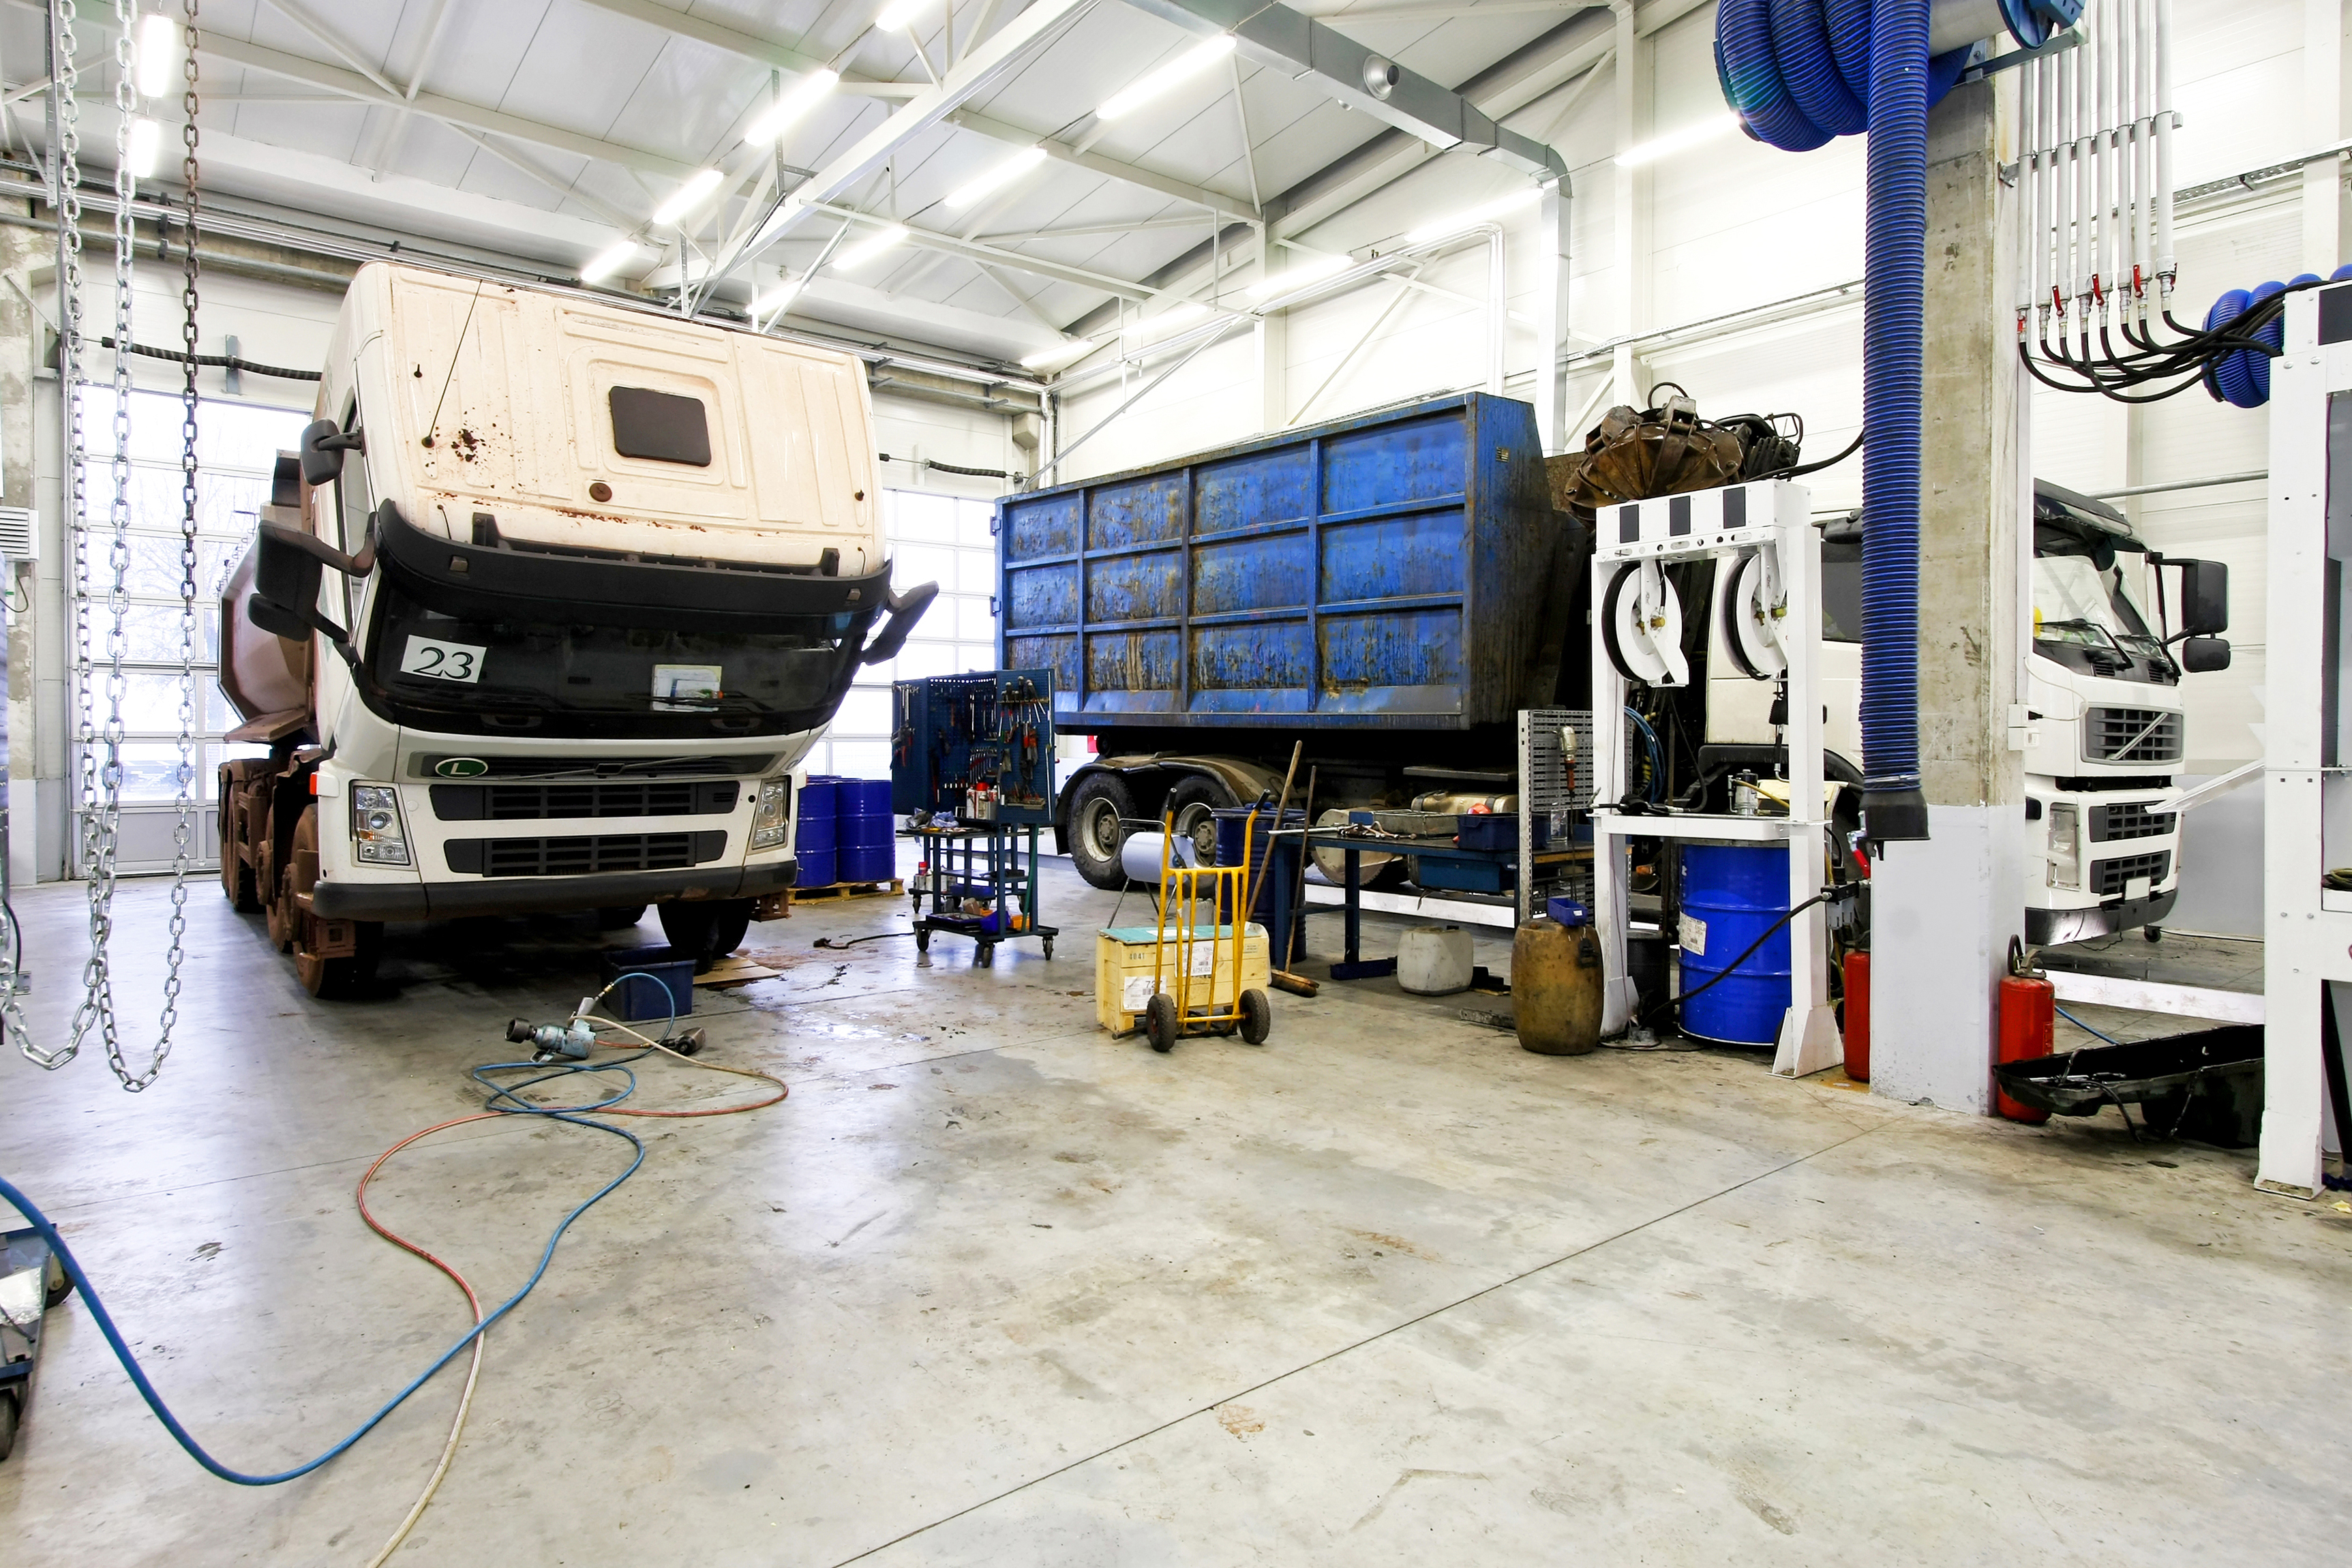 Garage Repair Service : Sw sheppard commercials hgv recovery and repair